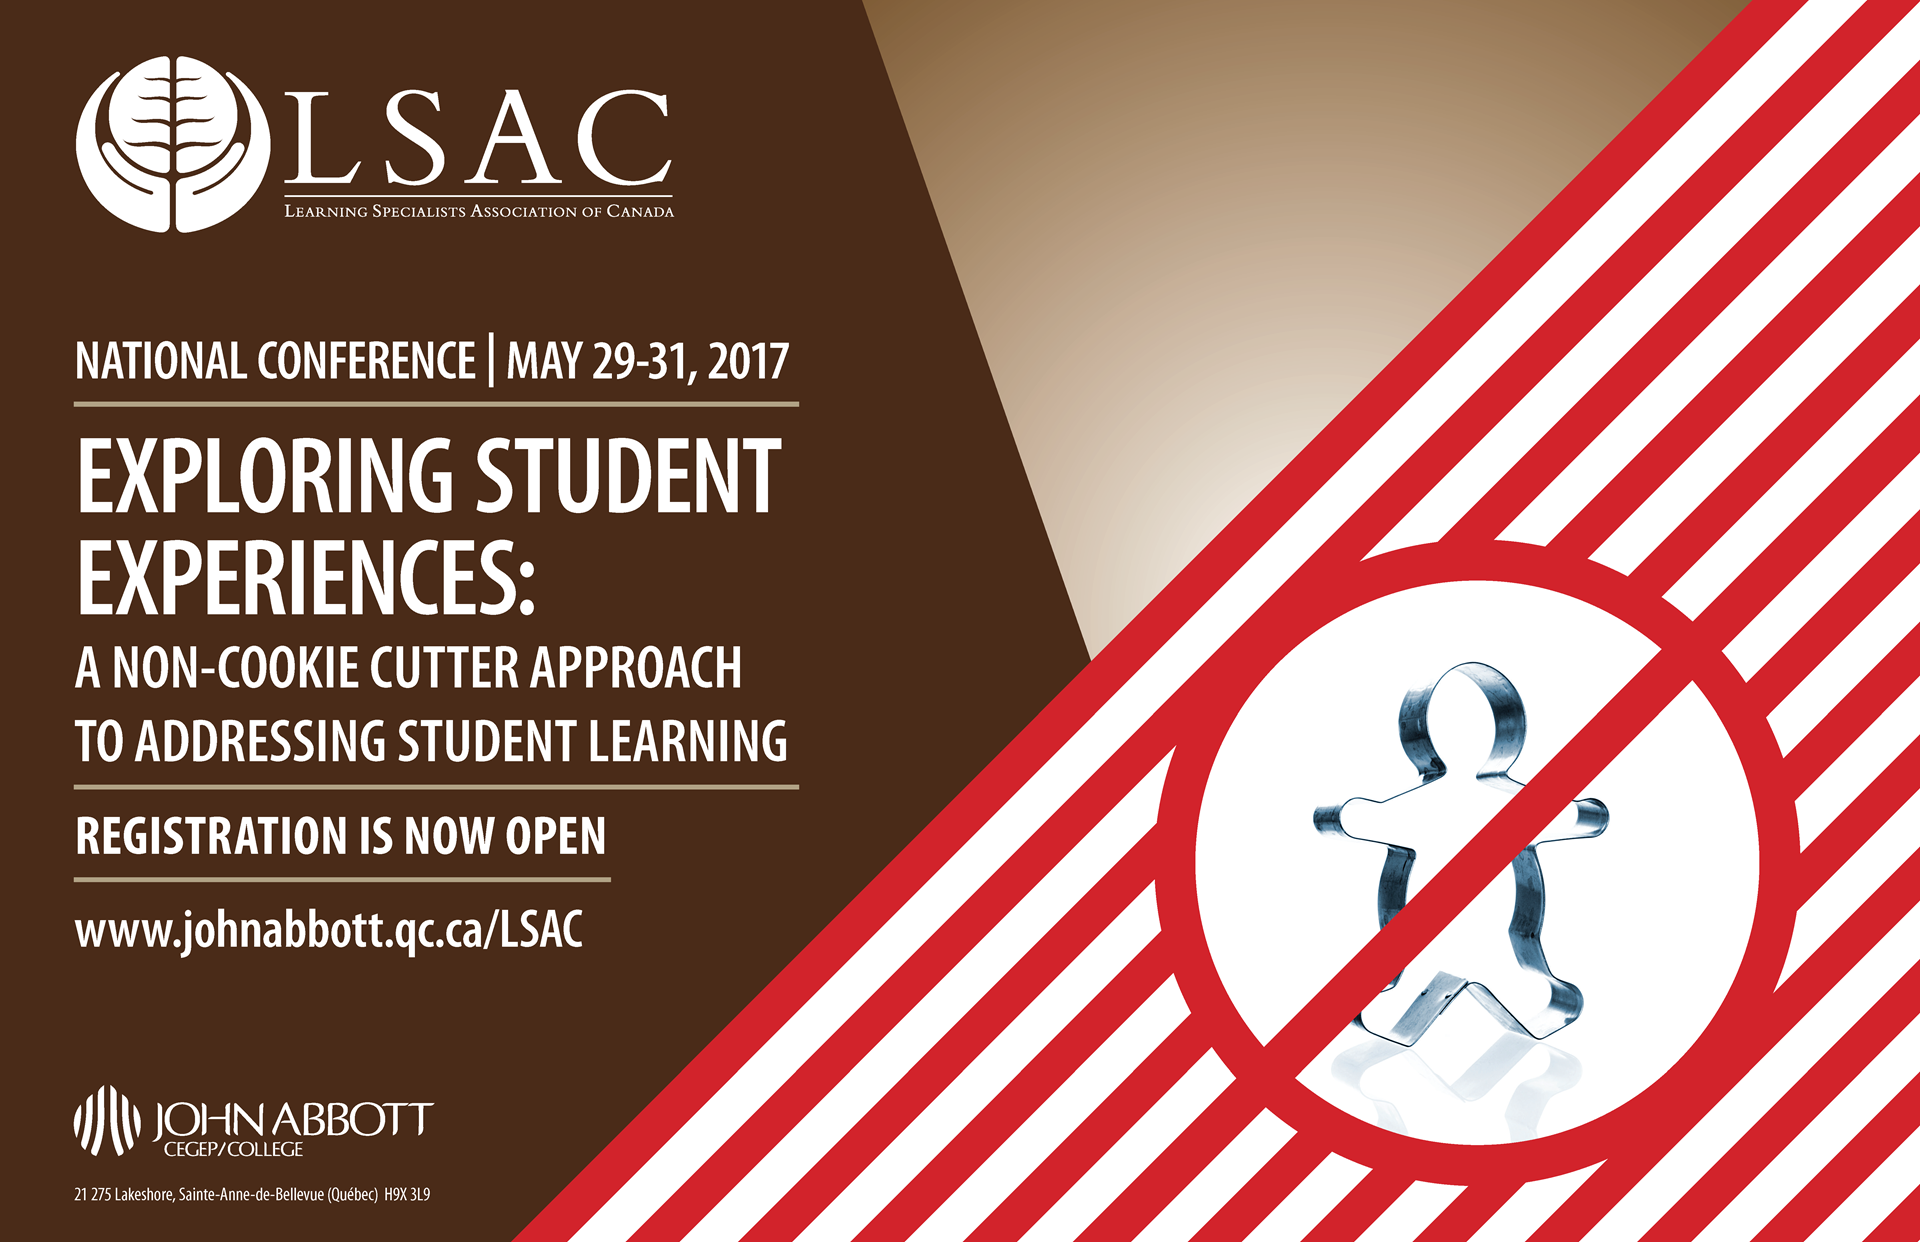 LSAC 2017 Conference Poster